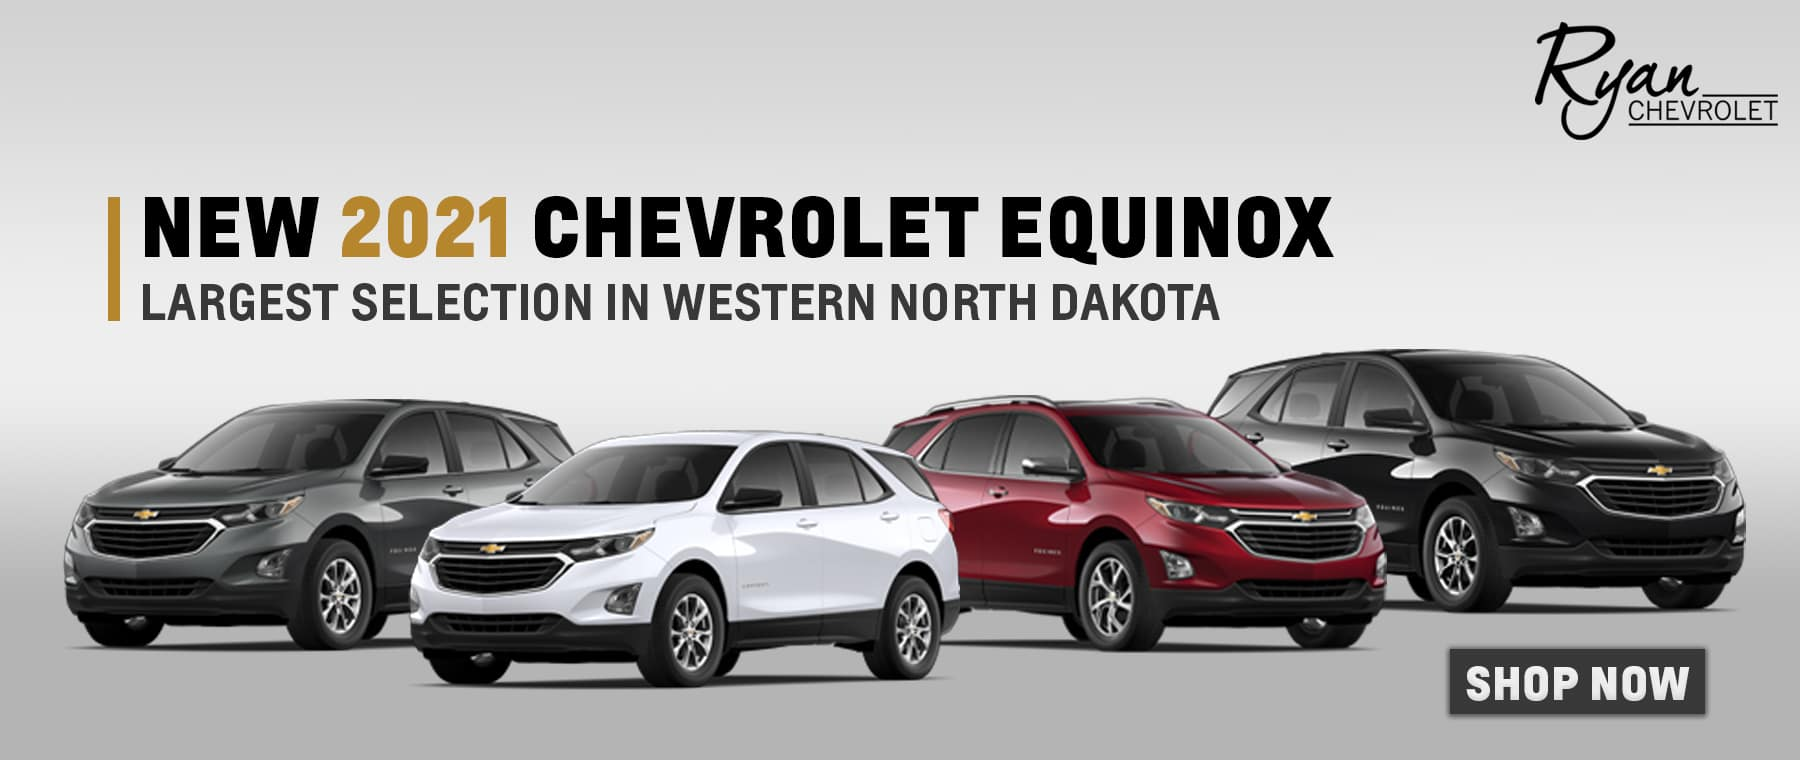 We have the largest selection of new Equinox models in Western North Dakota